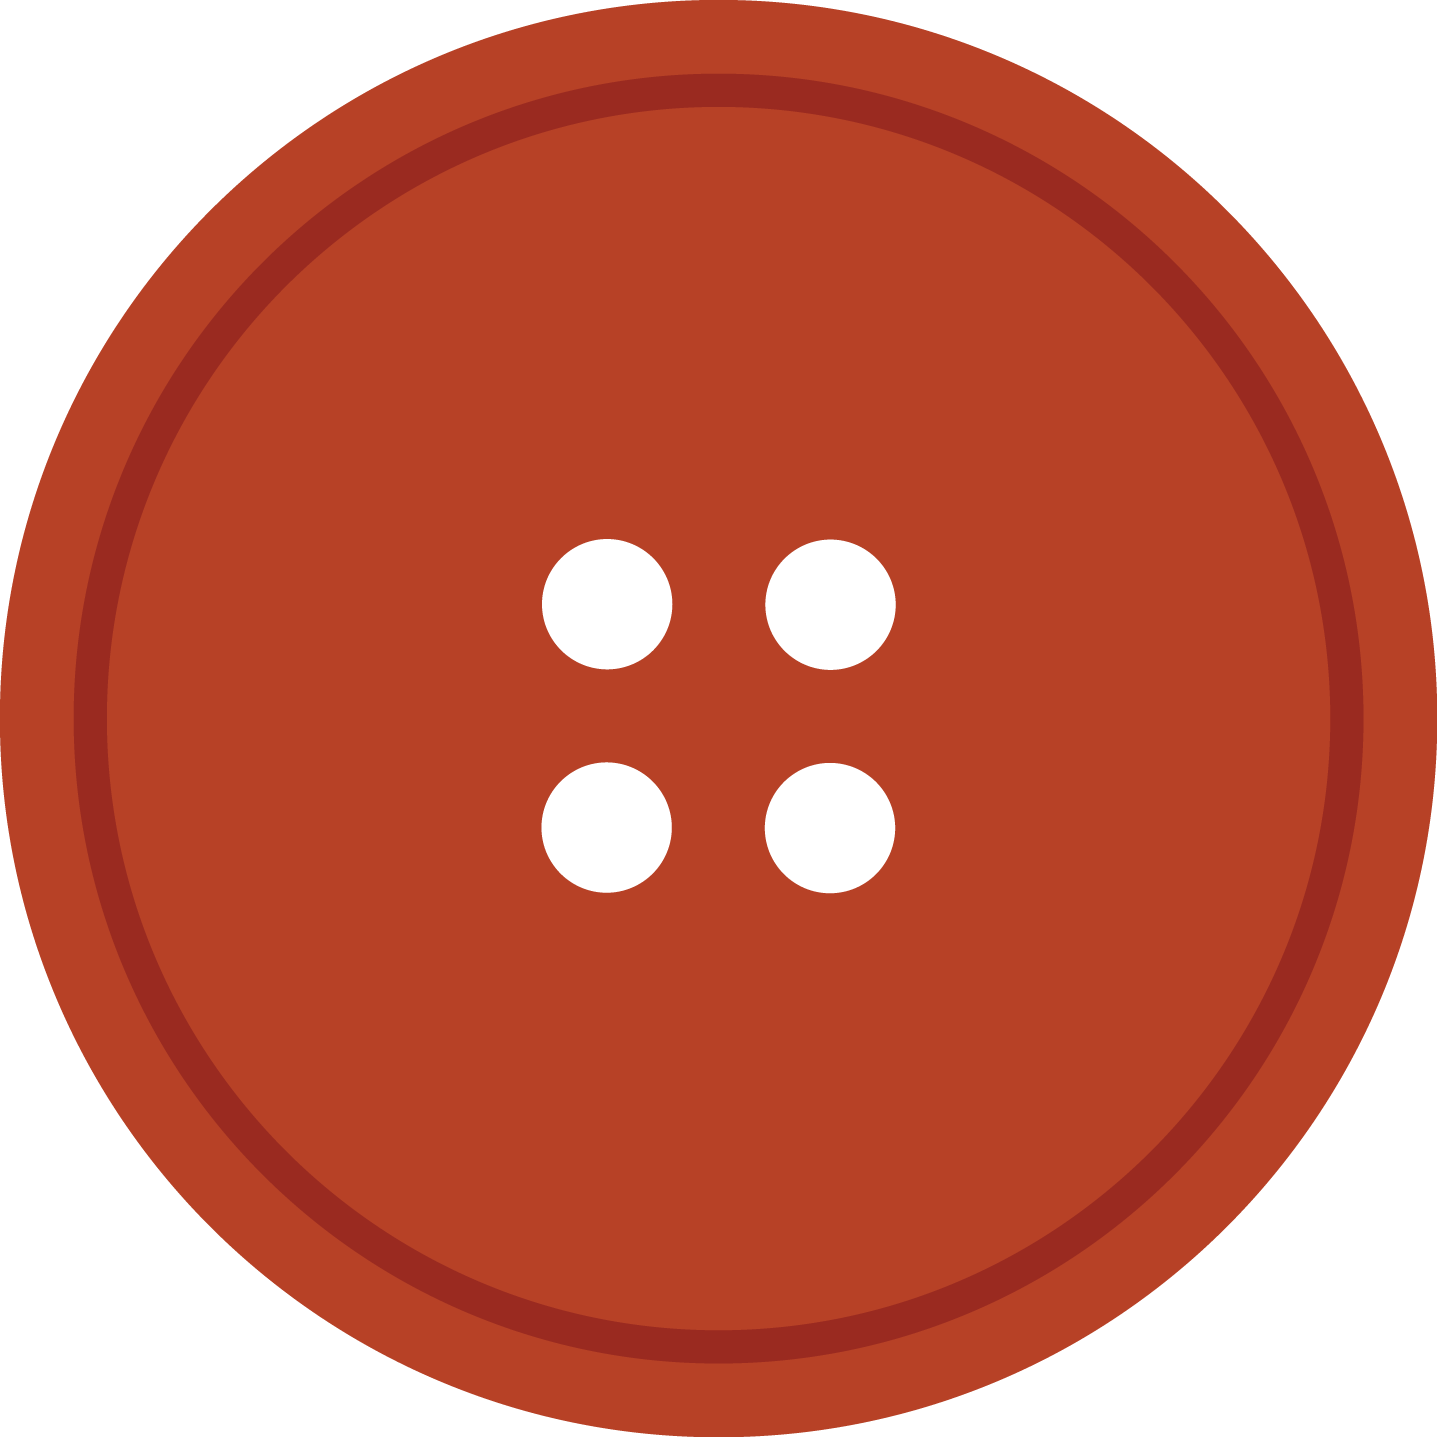 Bright Rediant Round Cloth Button With 4 Hole PNG Image.